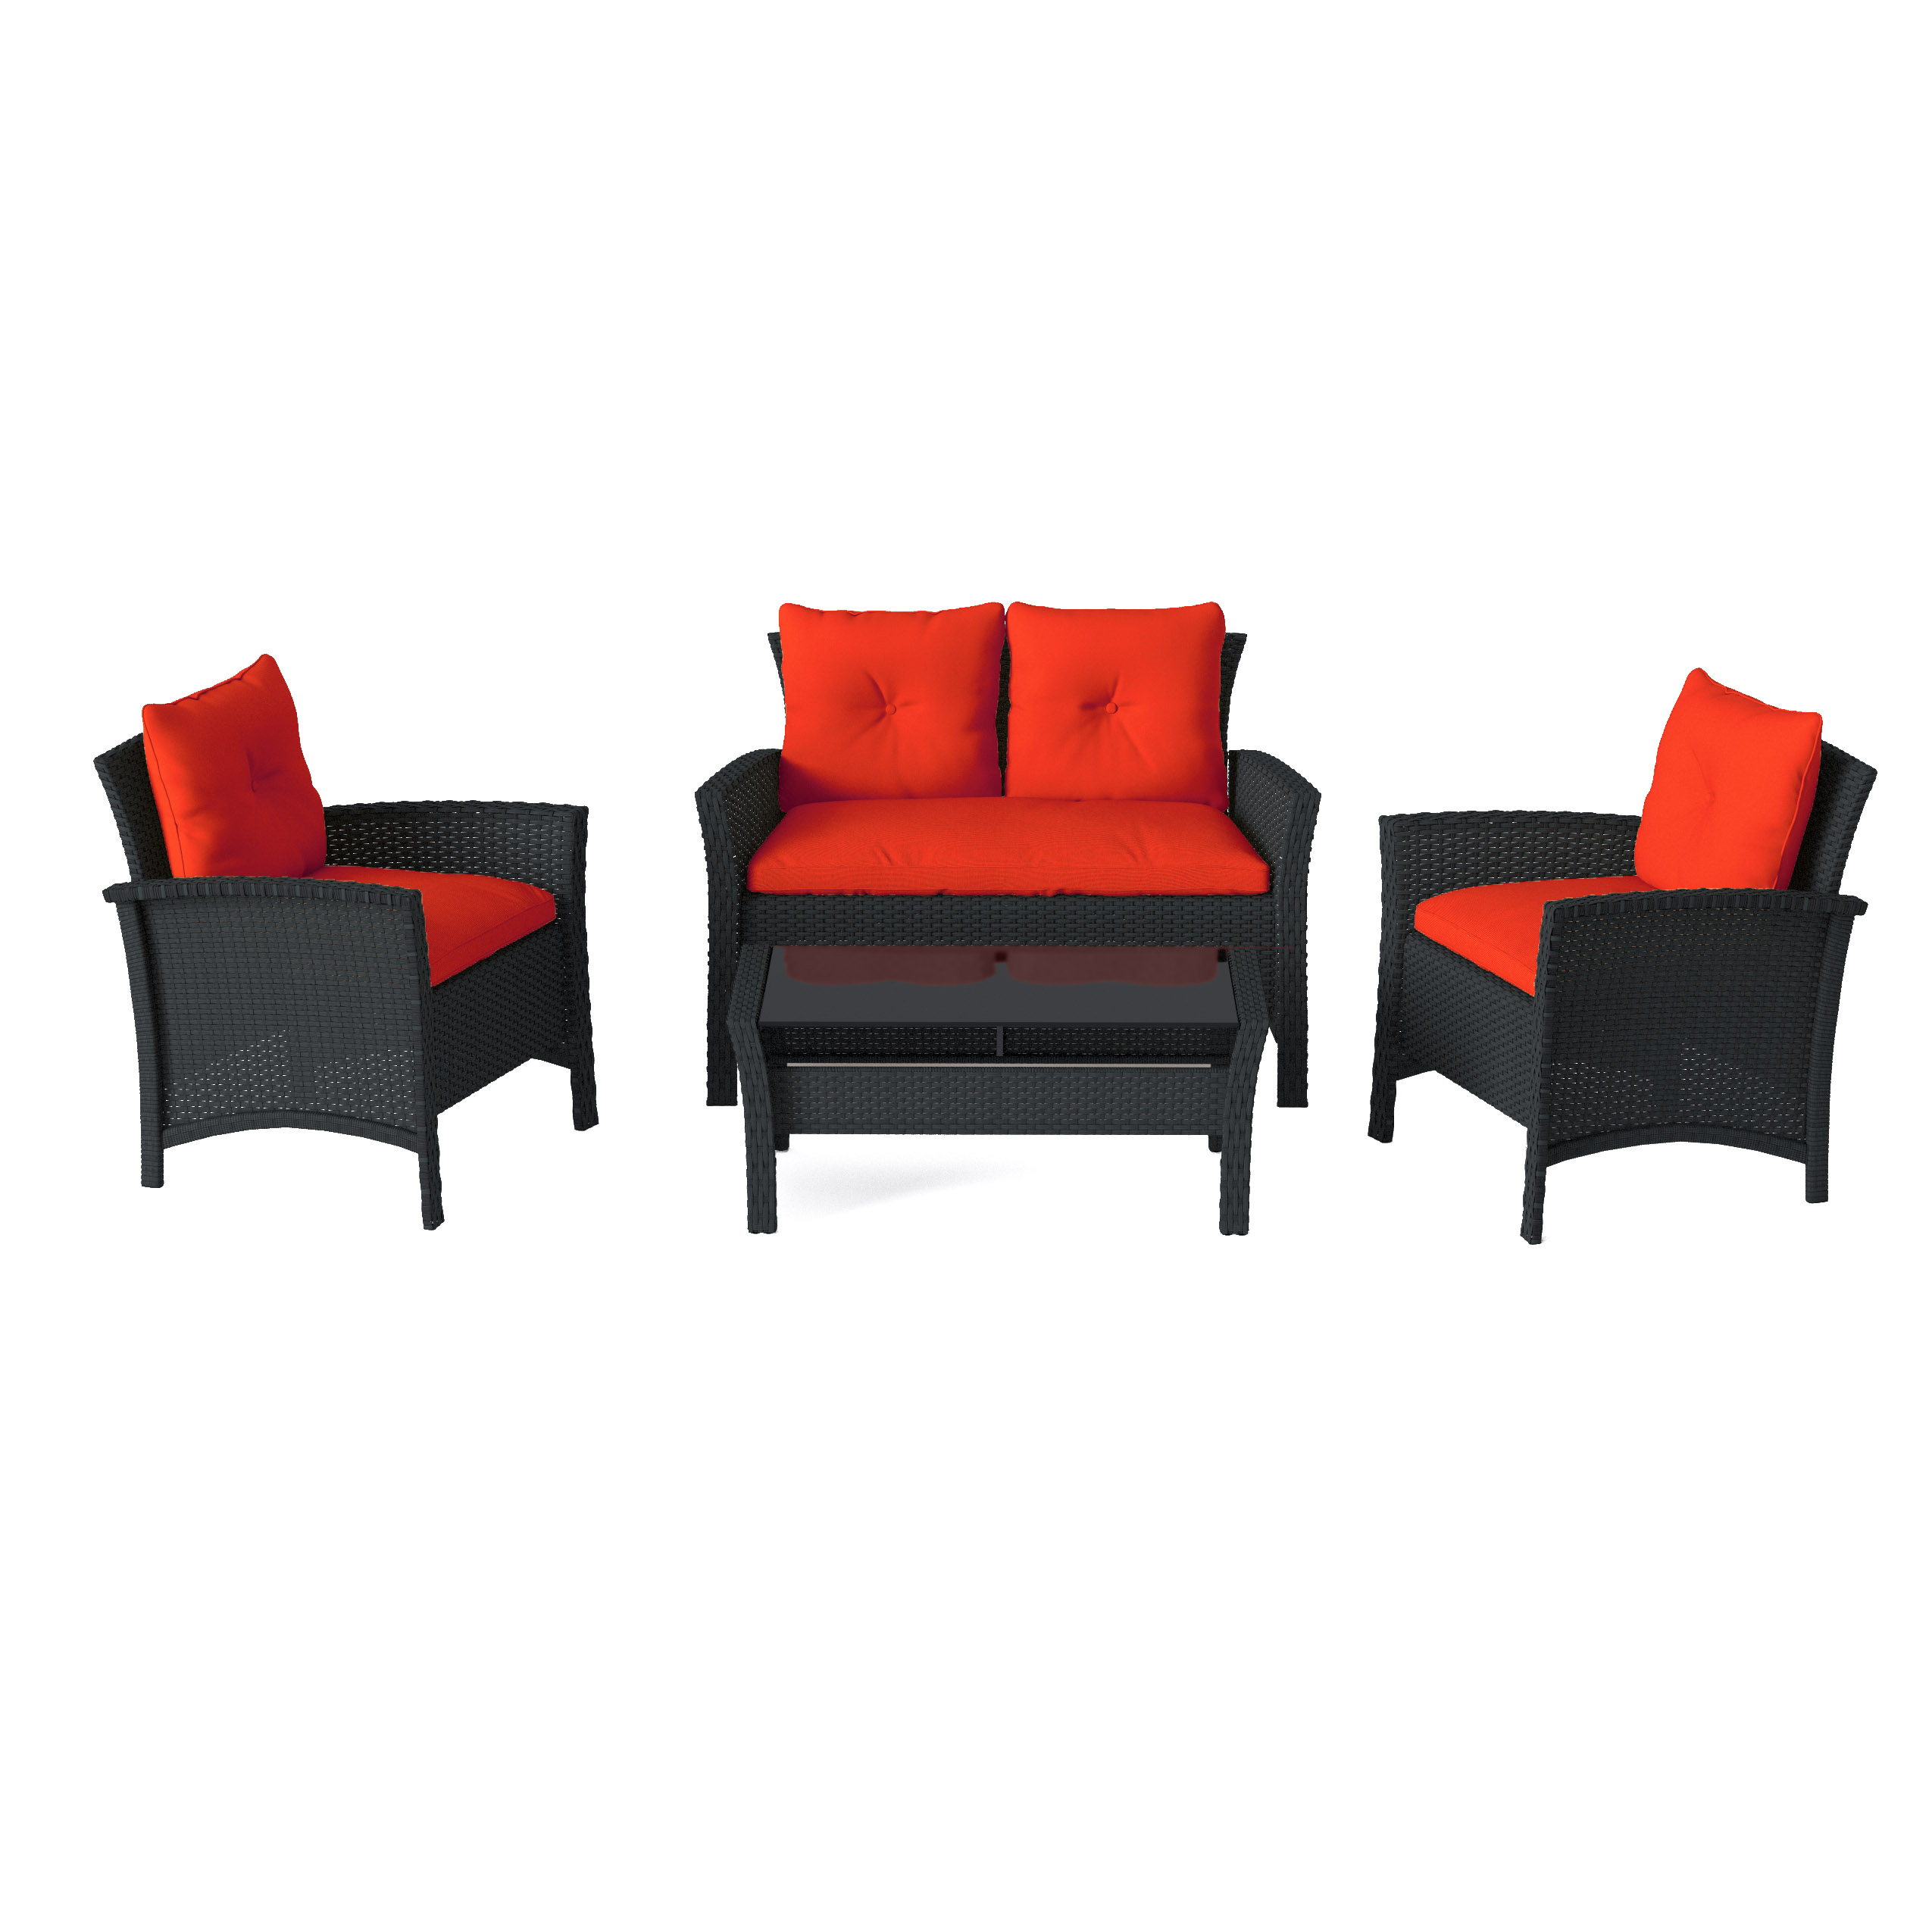 Red Patio Chairs 4pc Black Resin Rattan Wicker Patio Set With Red Cushions